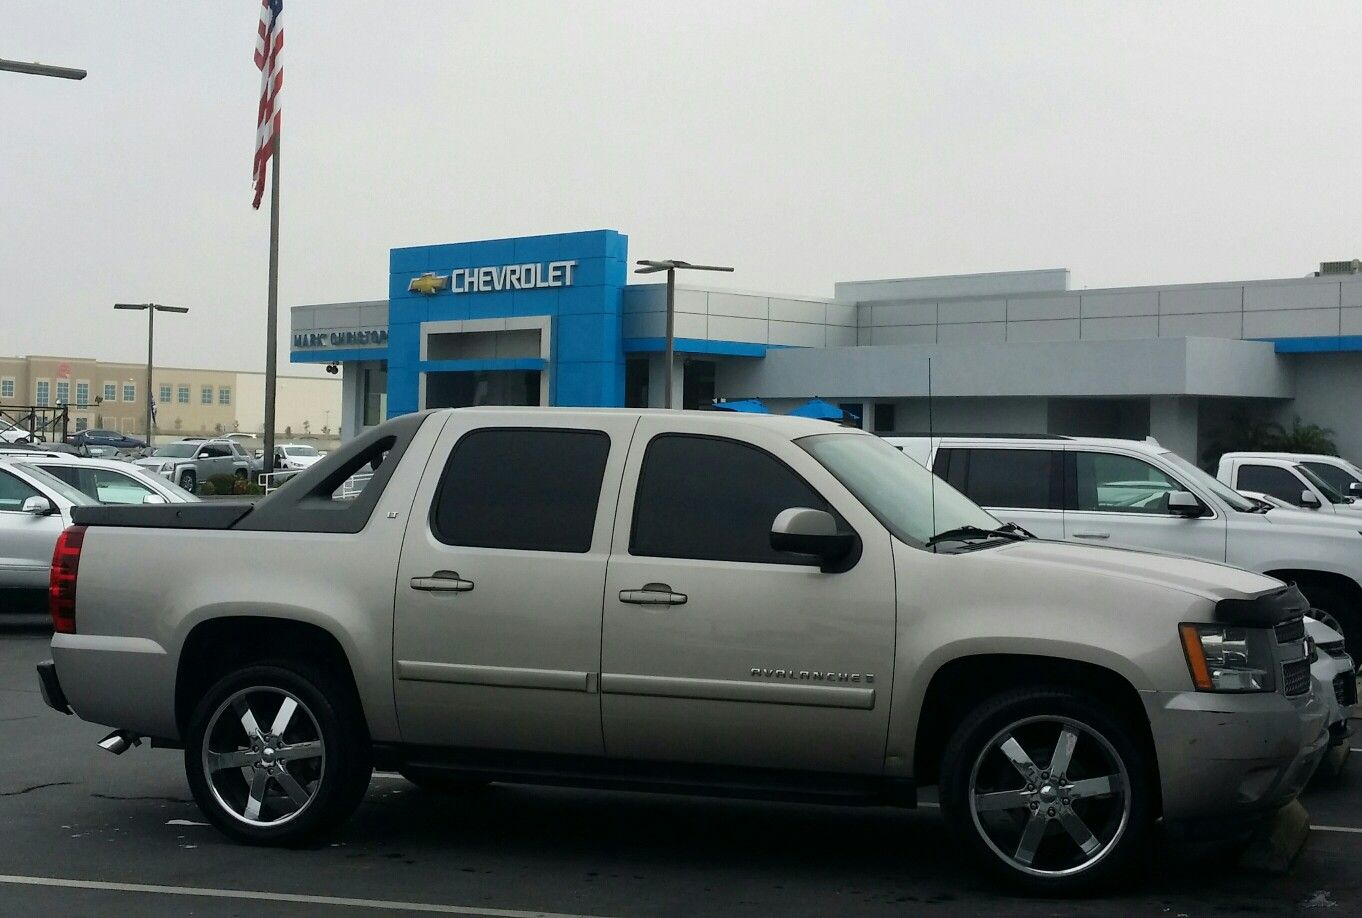 2010 chevrolet avalanche fuel krank d516 chrome rims 20x9 and 20 offset 305 55 20 fuel wheels in action pinterest rims online wheels and